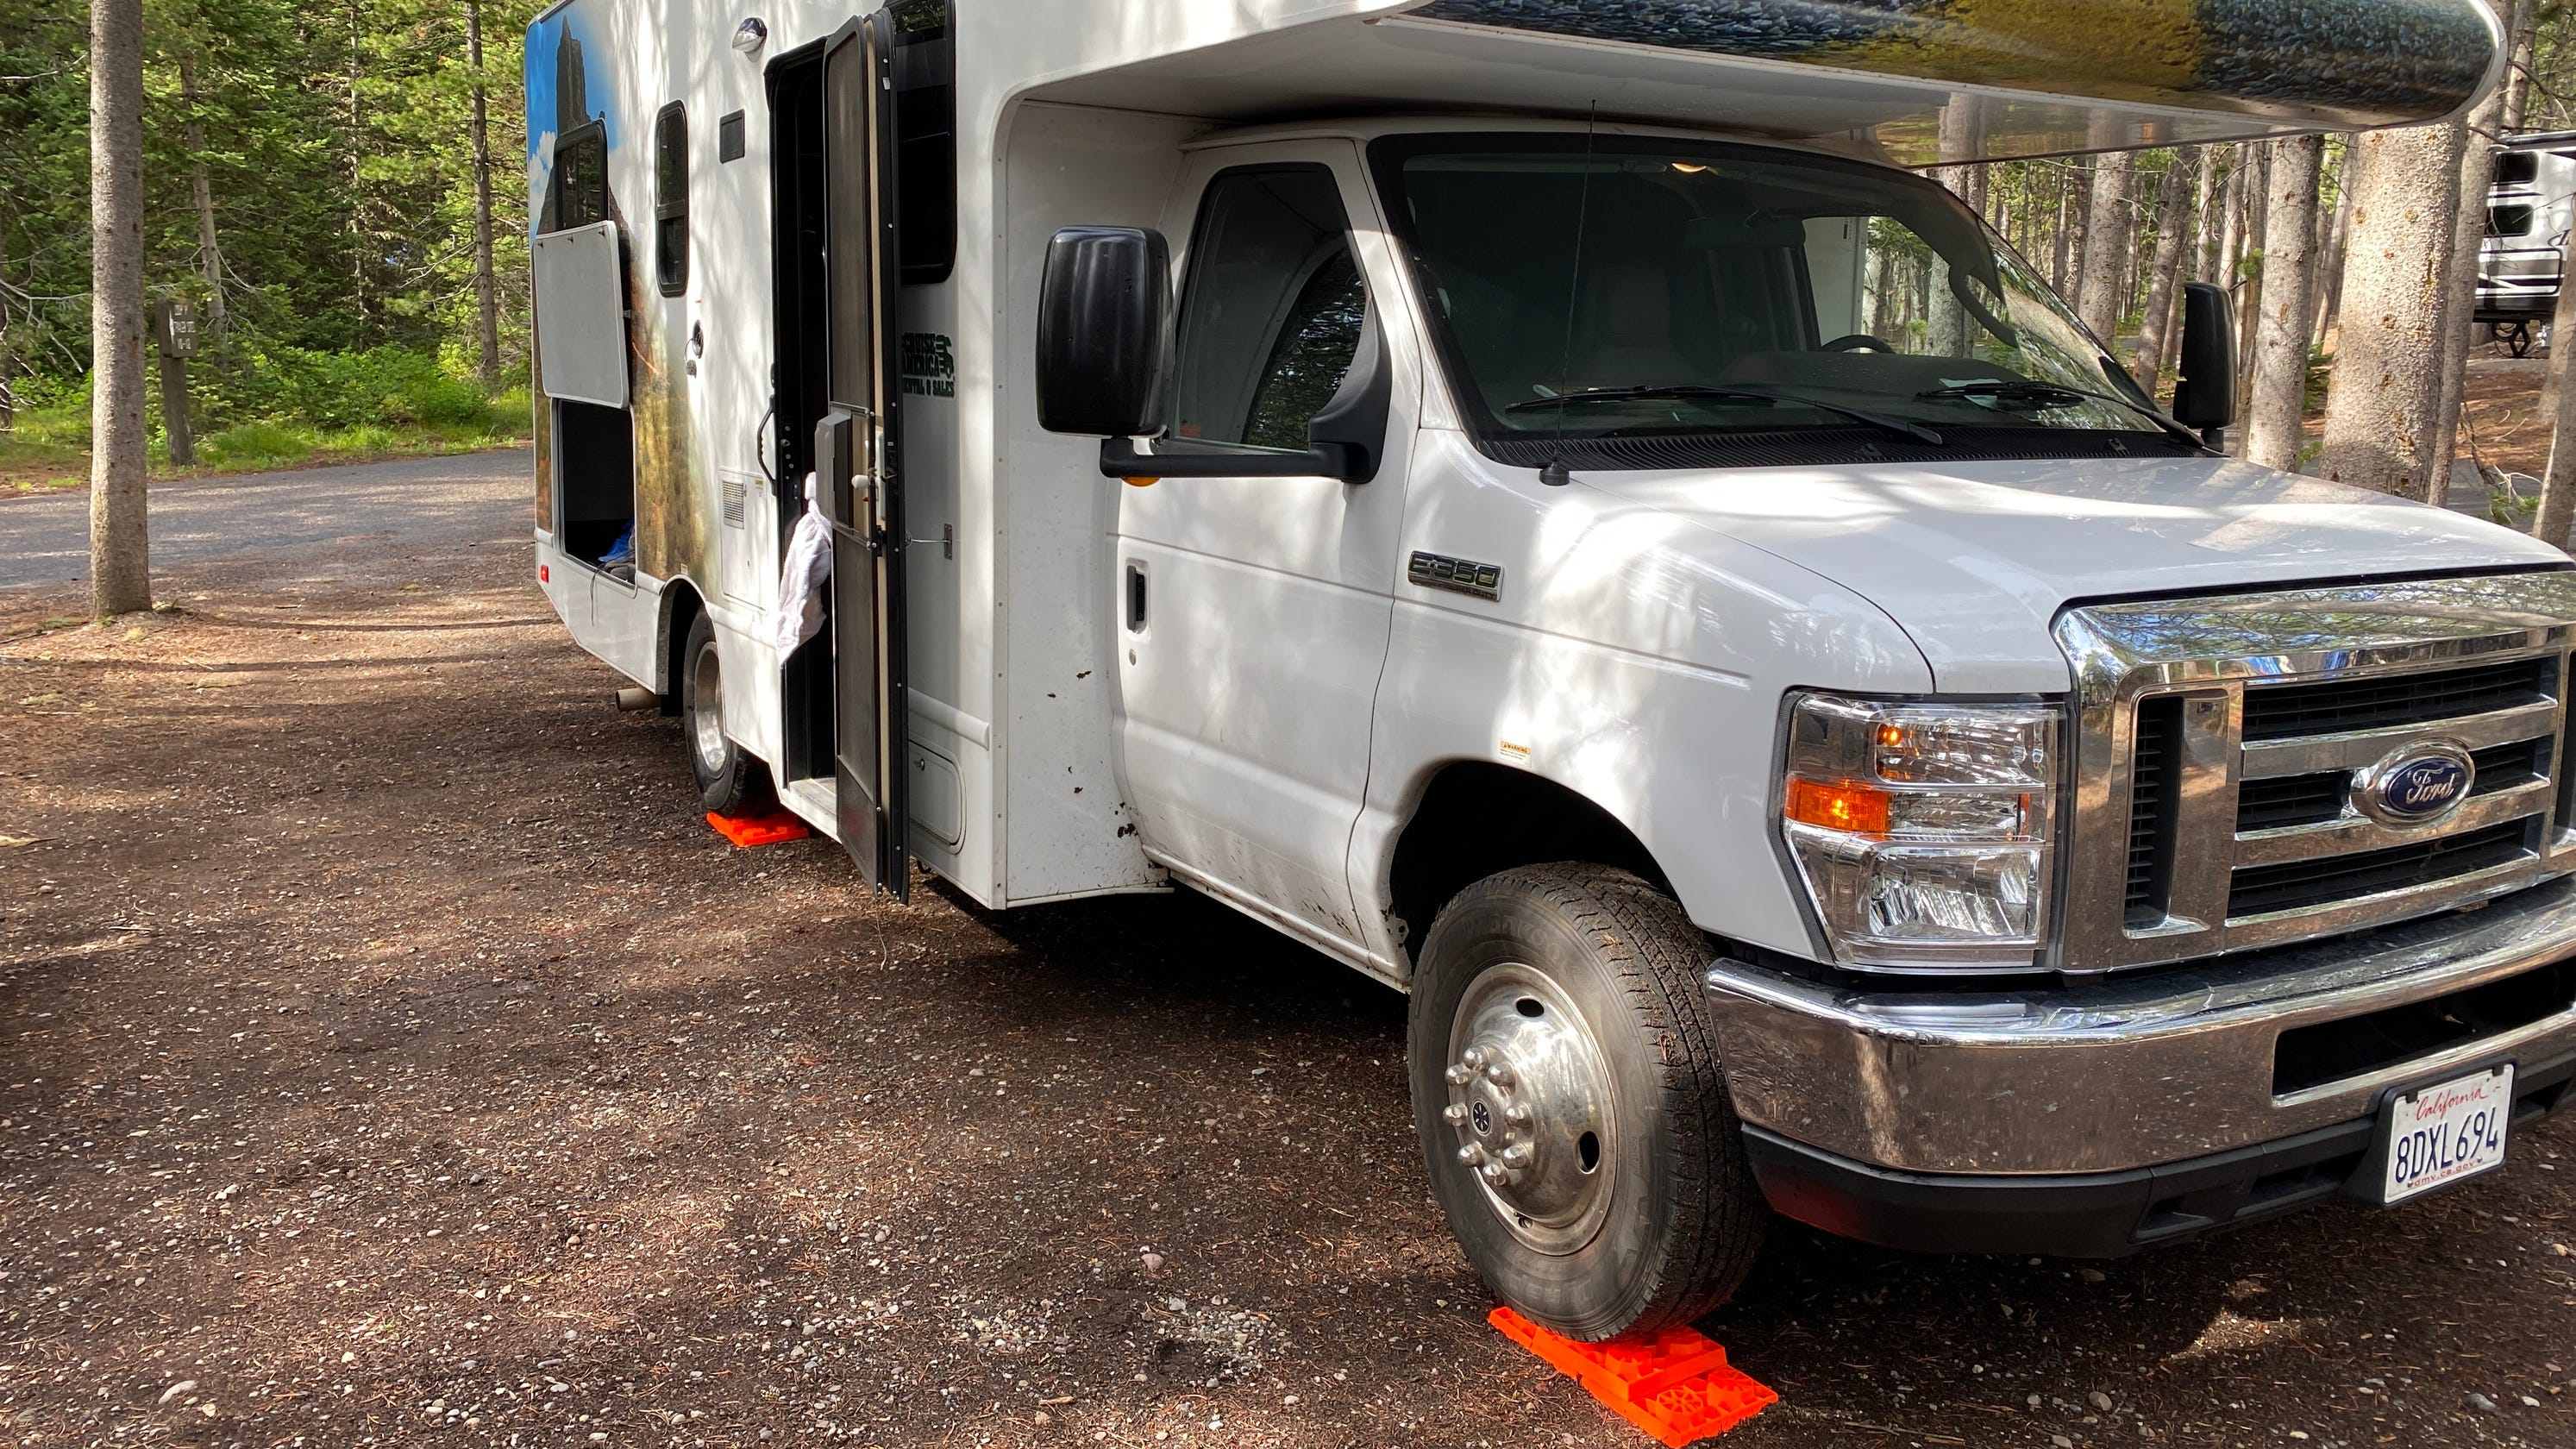 RVing for the first time? 8 tips for newbies I wish I'd known during my first trip